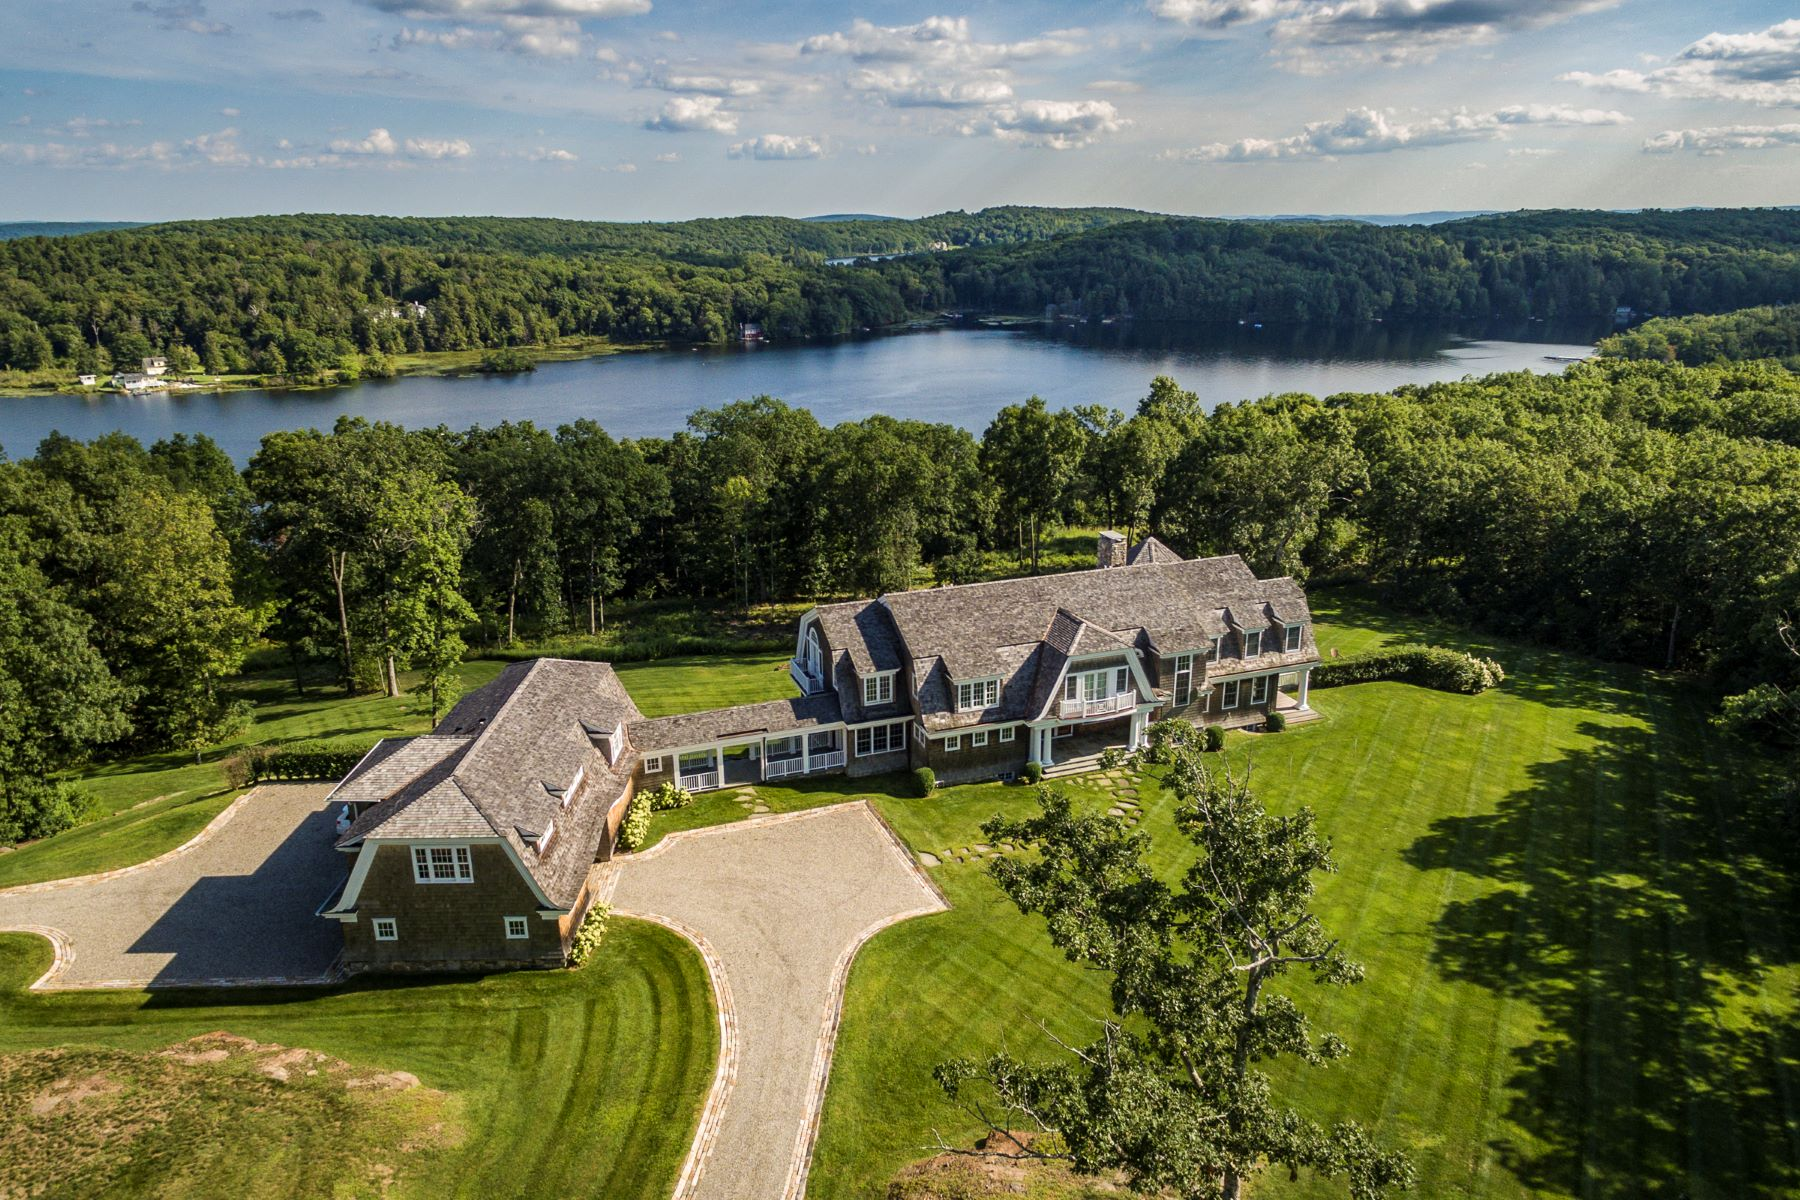 Single Family Home for Sale at Lake Front Shingle Style 200 Kenmont Rd Kent, Connecticut, 06757 United States